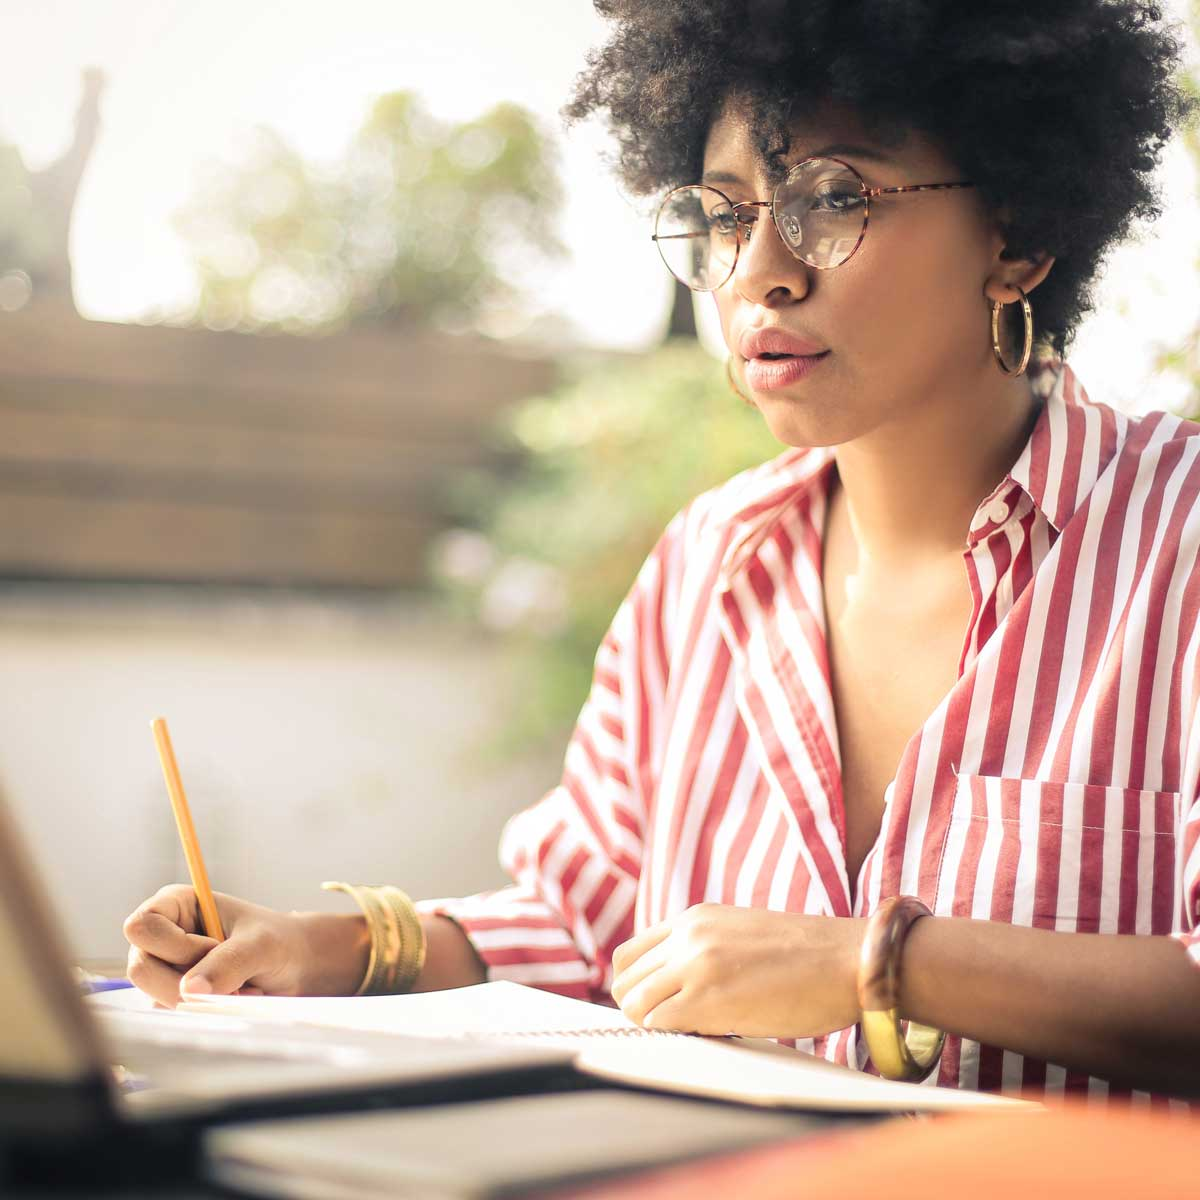 woman studying laptop screen with pencil in hand and notebook in front of her; woman working on a project